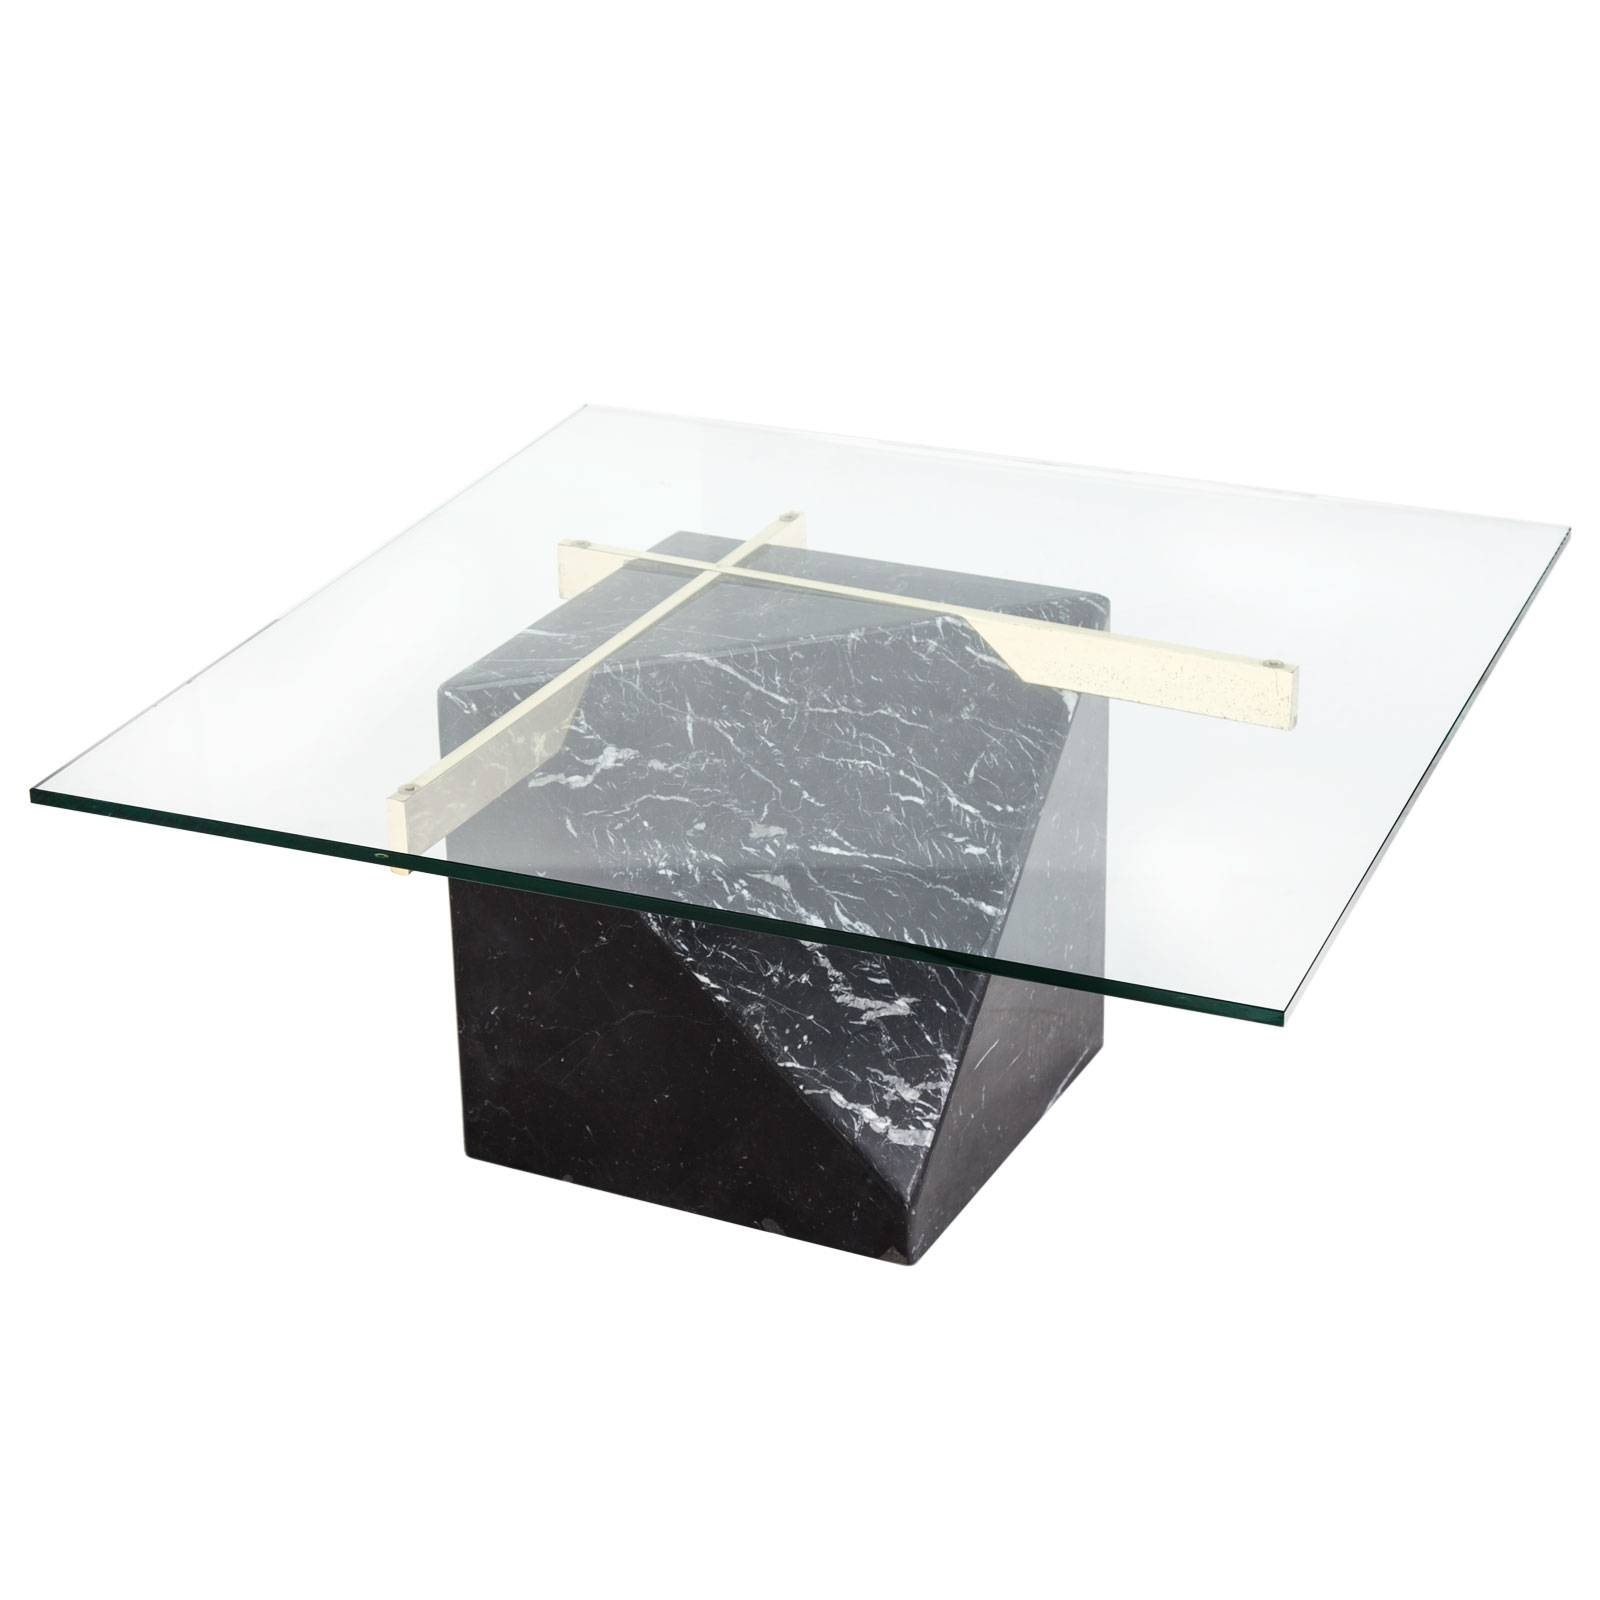 Marble Coffee Table Rentals | Event Furniture Rentals | Formdecor inside Marble And Glass Coffee Table (Image 10 of 15)